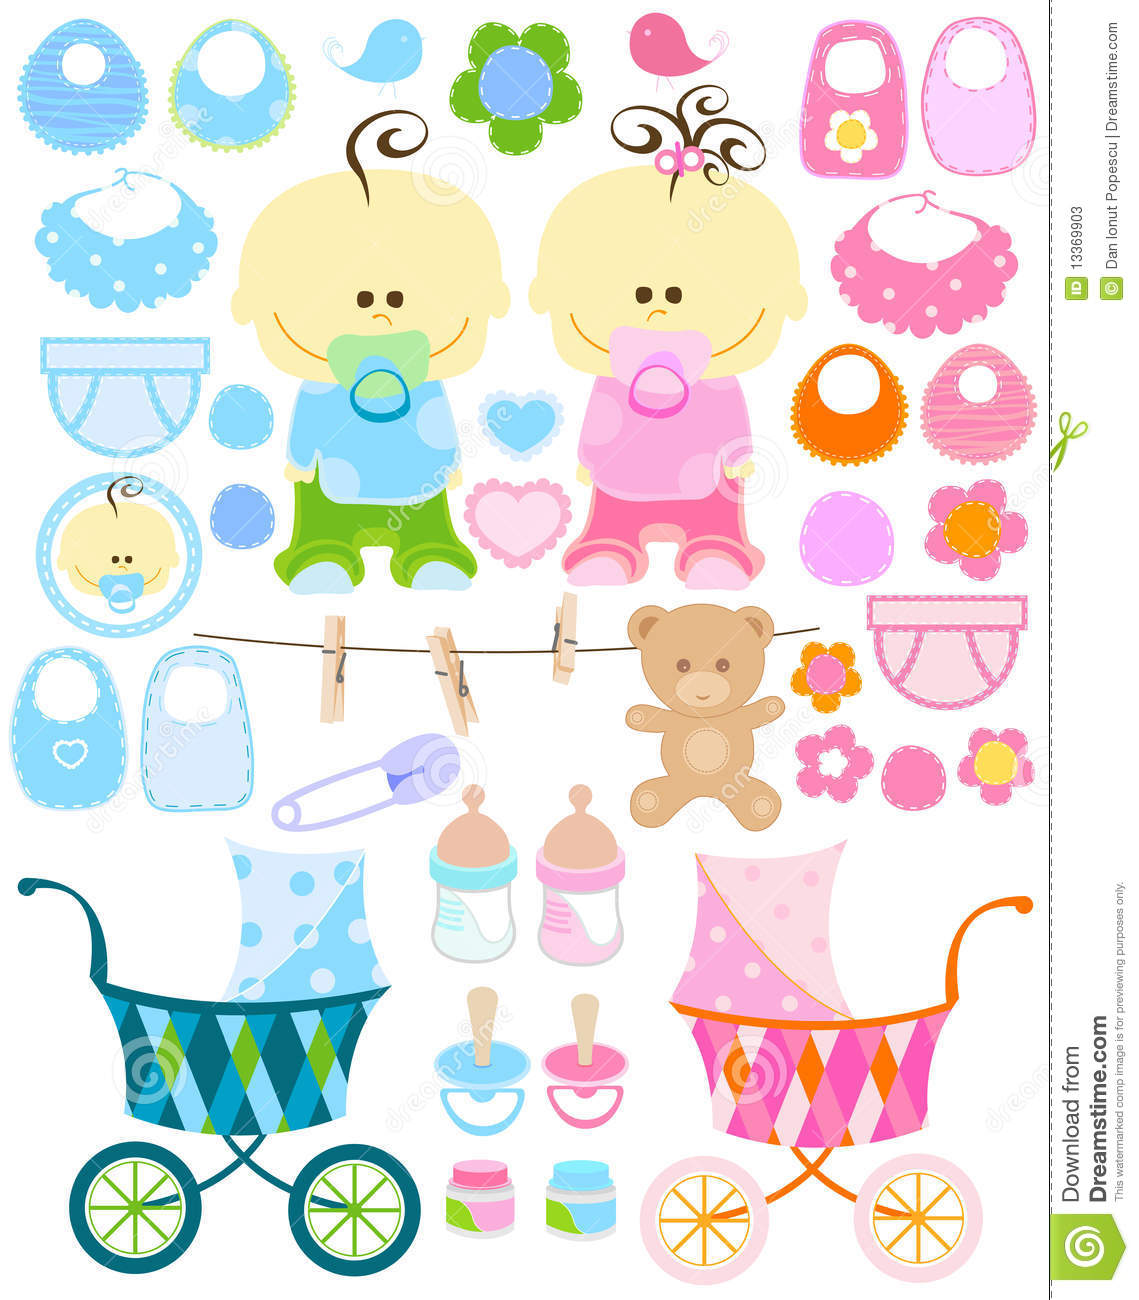 Baby girl supplies clipart svg free download Baby Stuff Stock Photos - Image: 13369903 svg free download